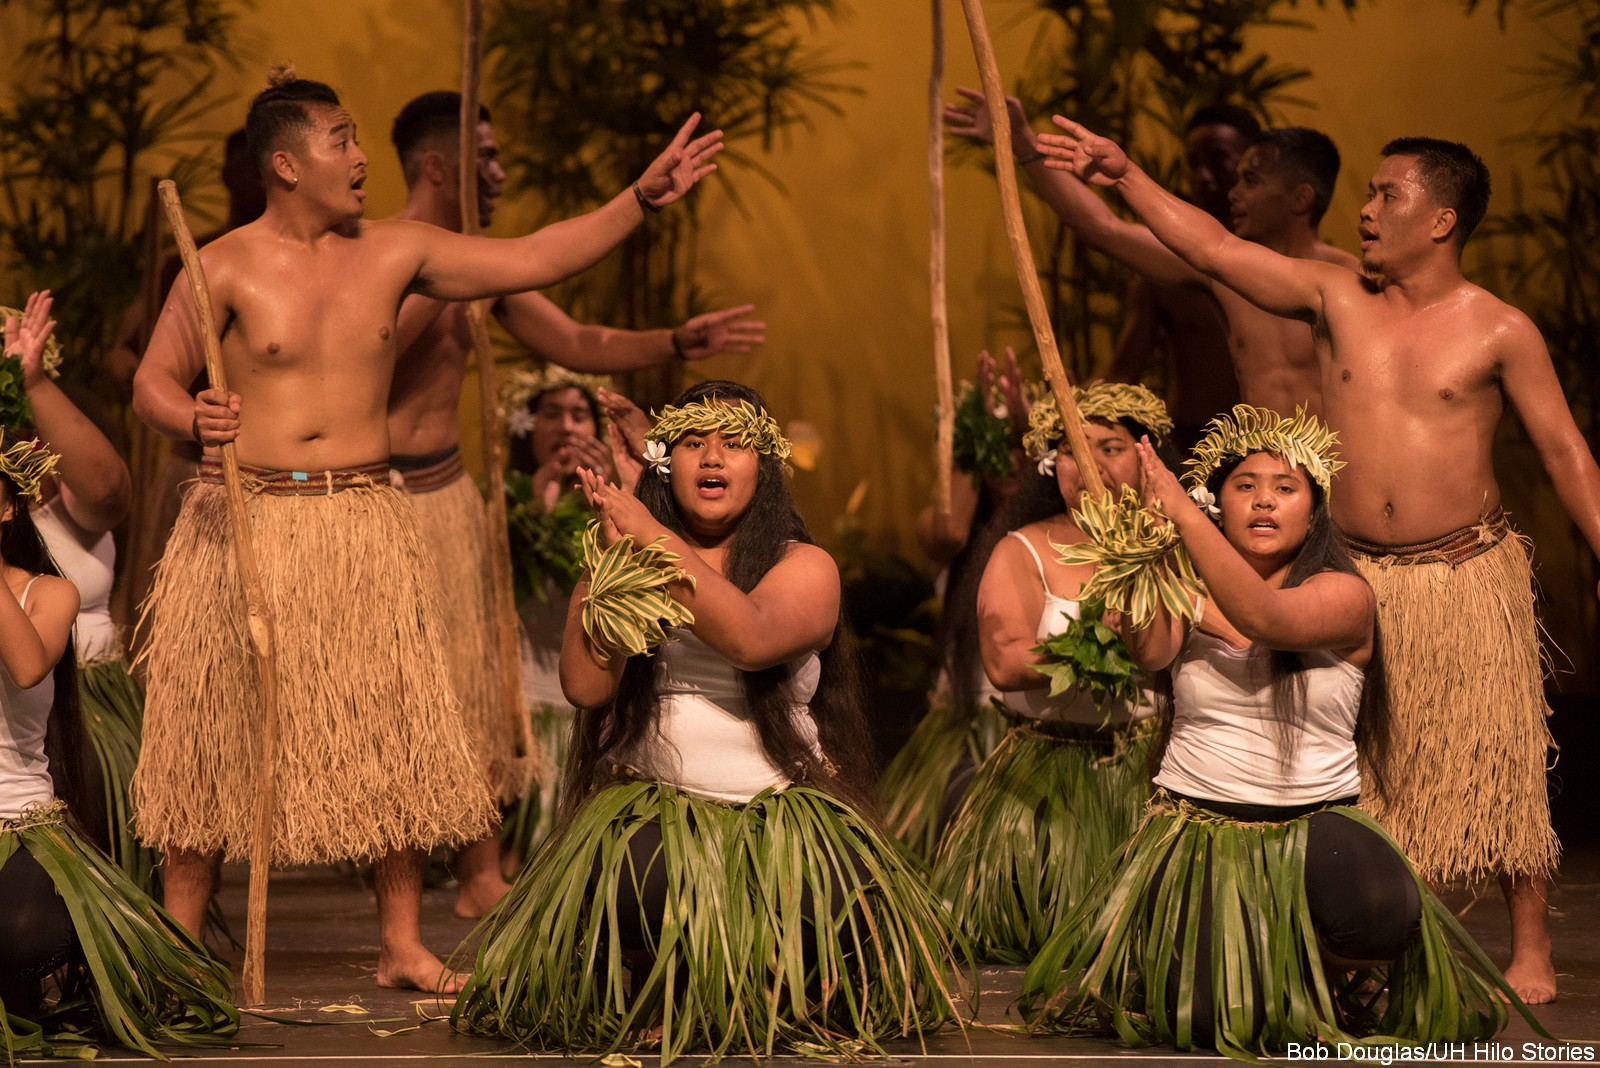 Group of male and female dancers in botanical skirts and headdresses, men are tossing sticks between themselves.